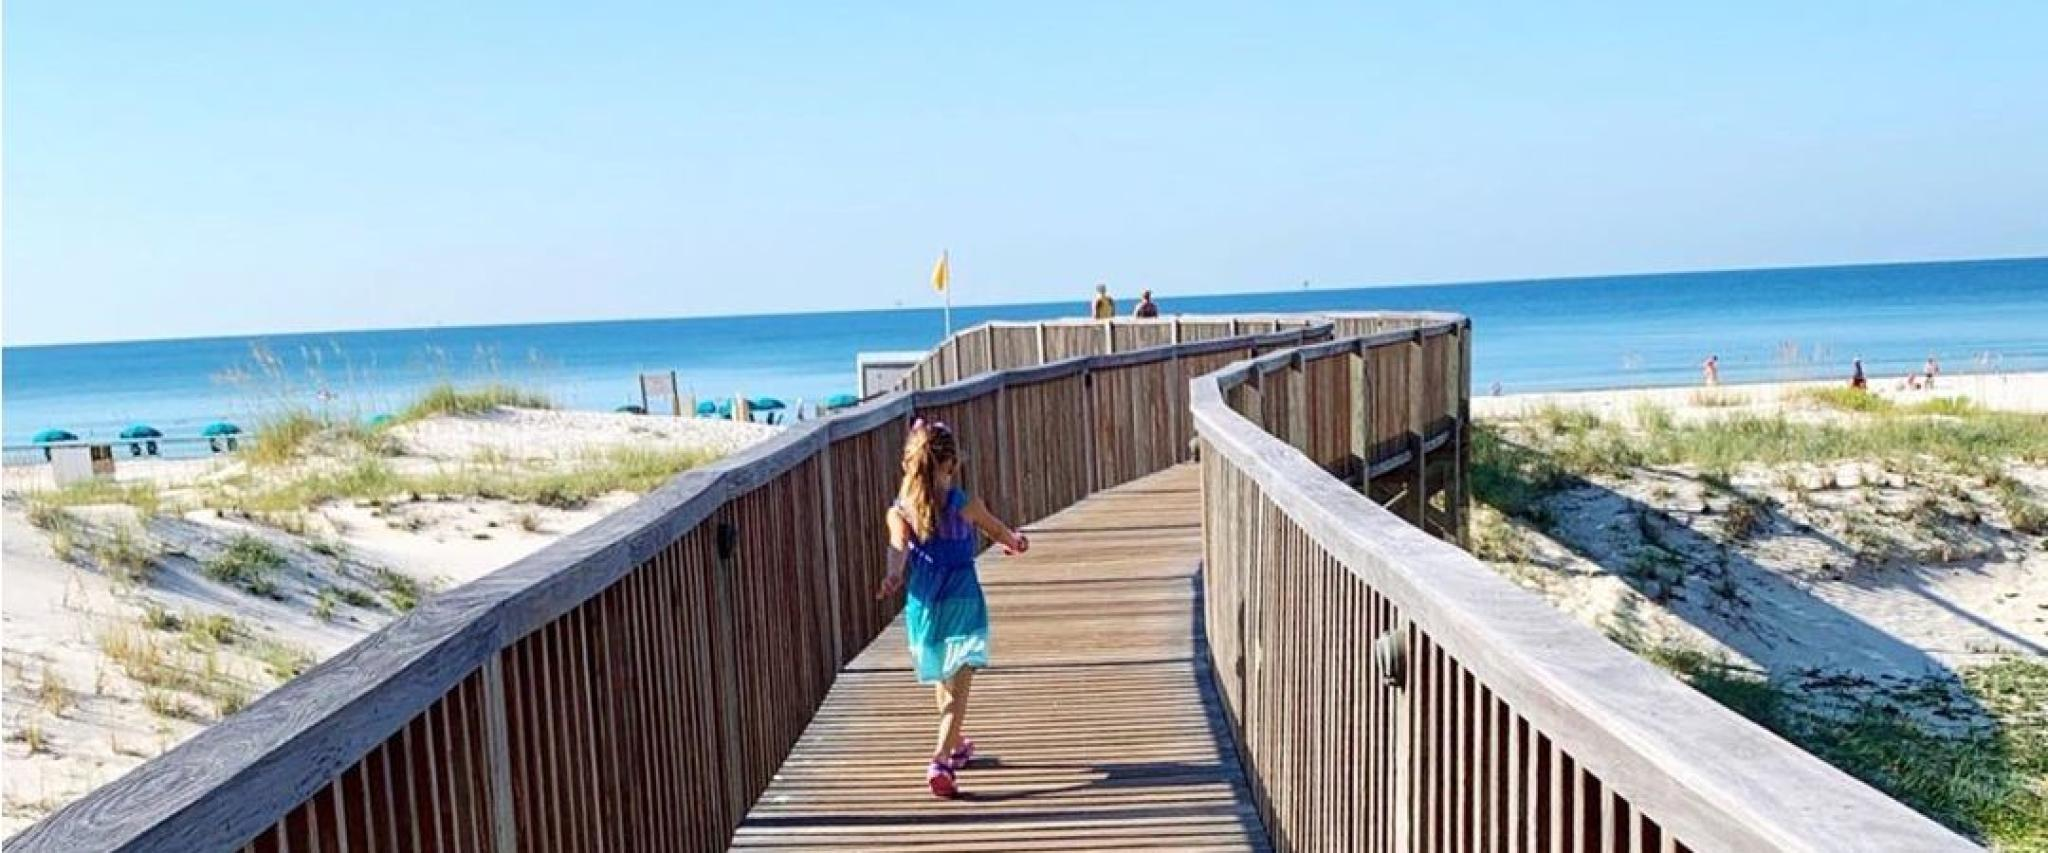 Little girl running out to the beach in Gulf Shores, AL